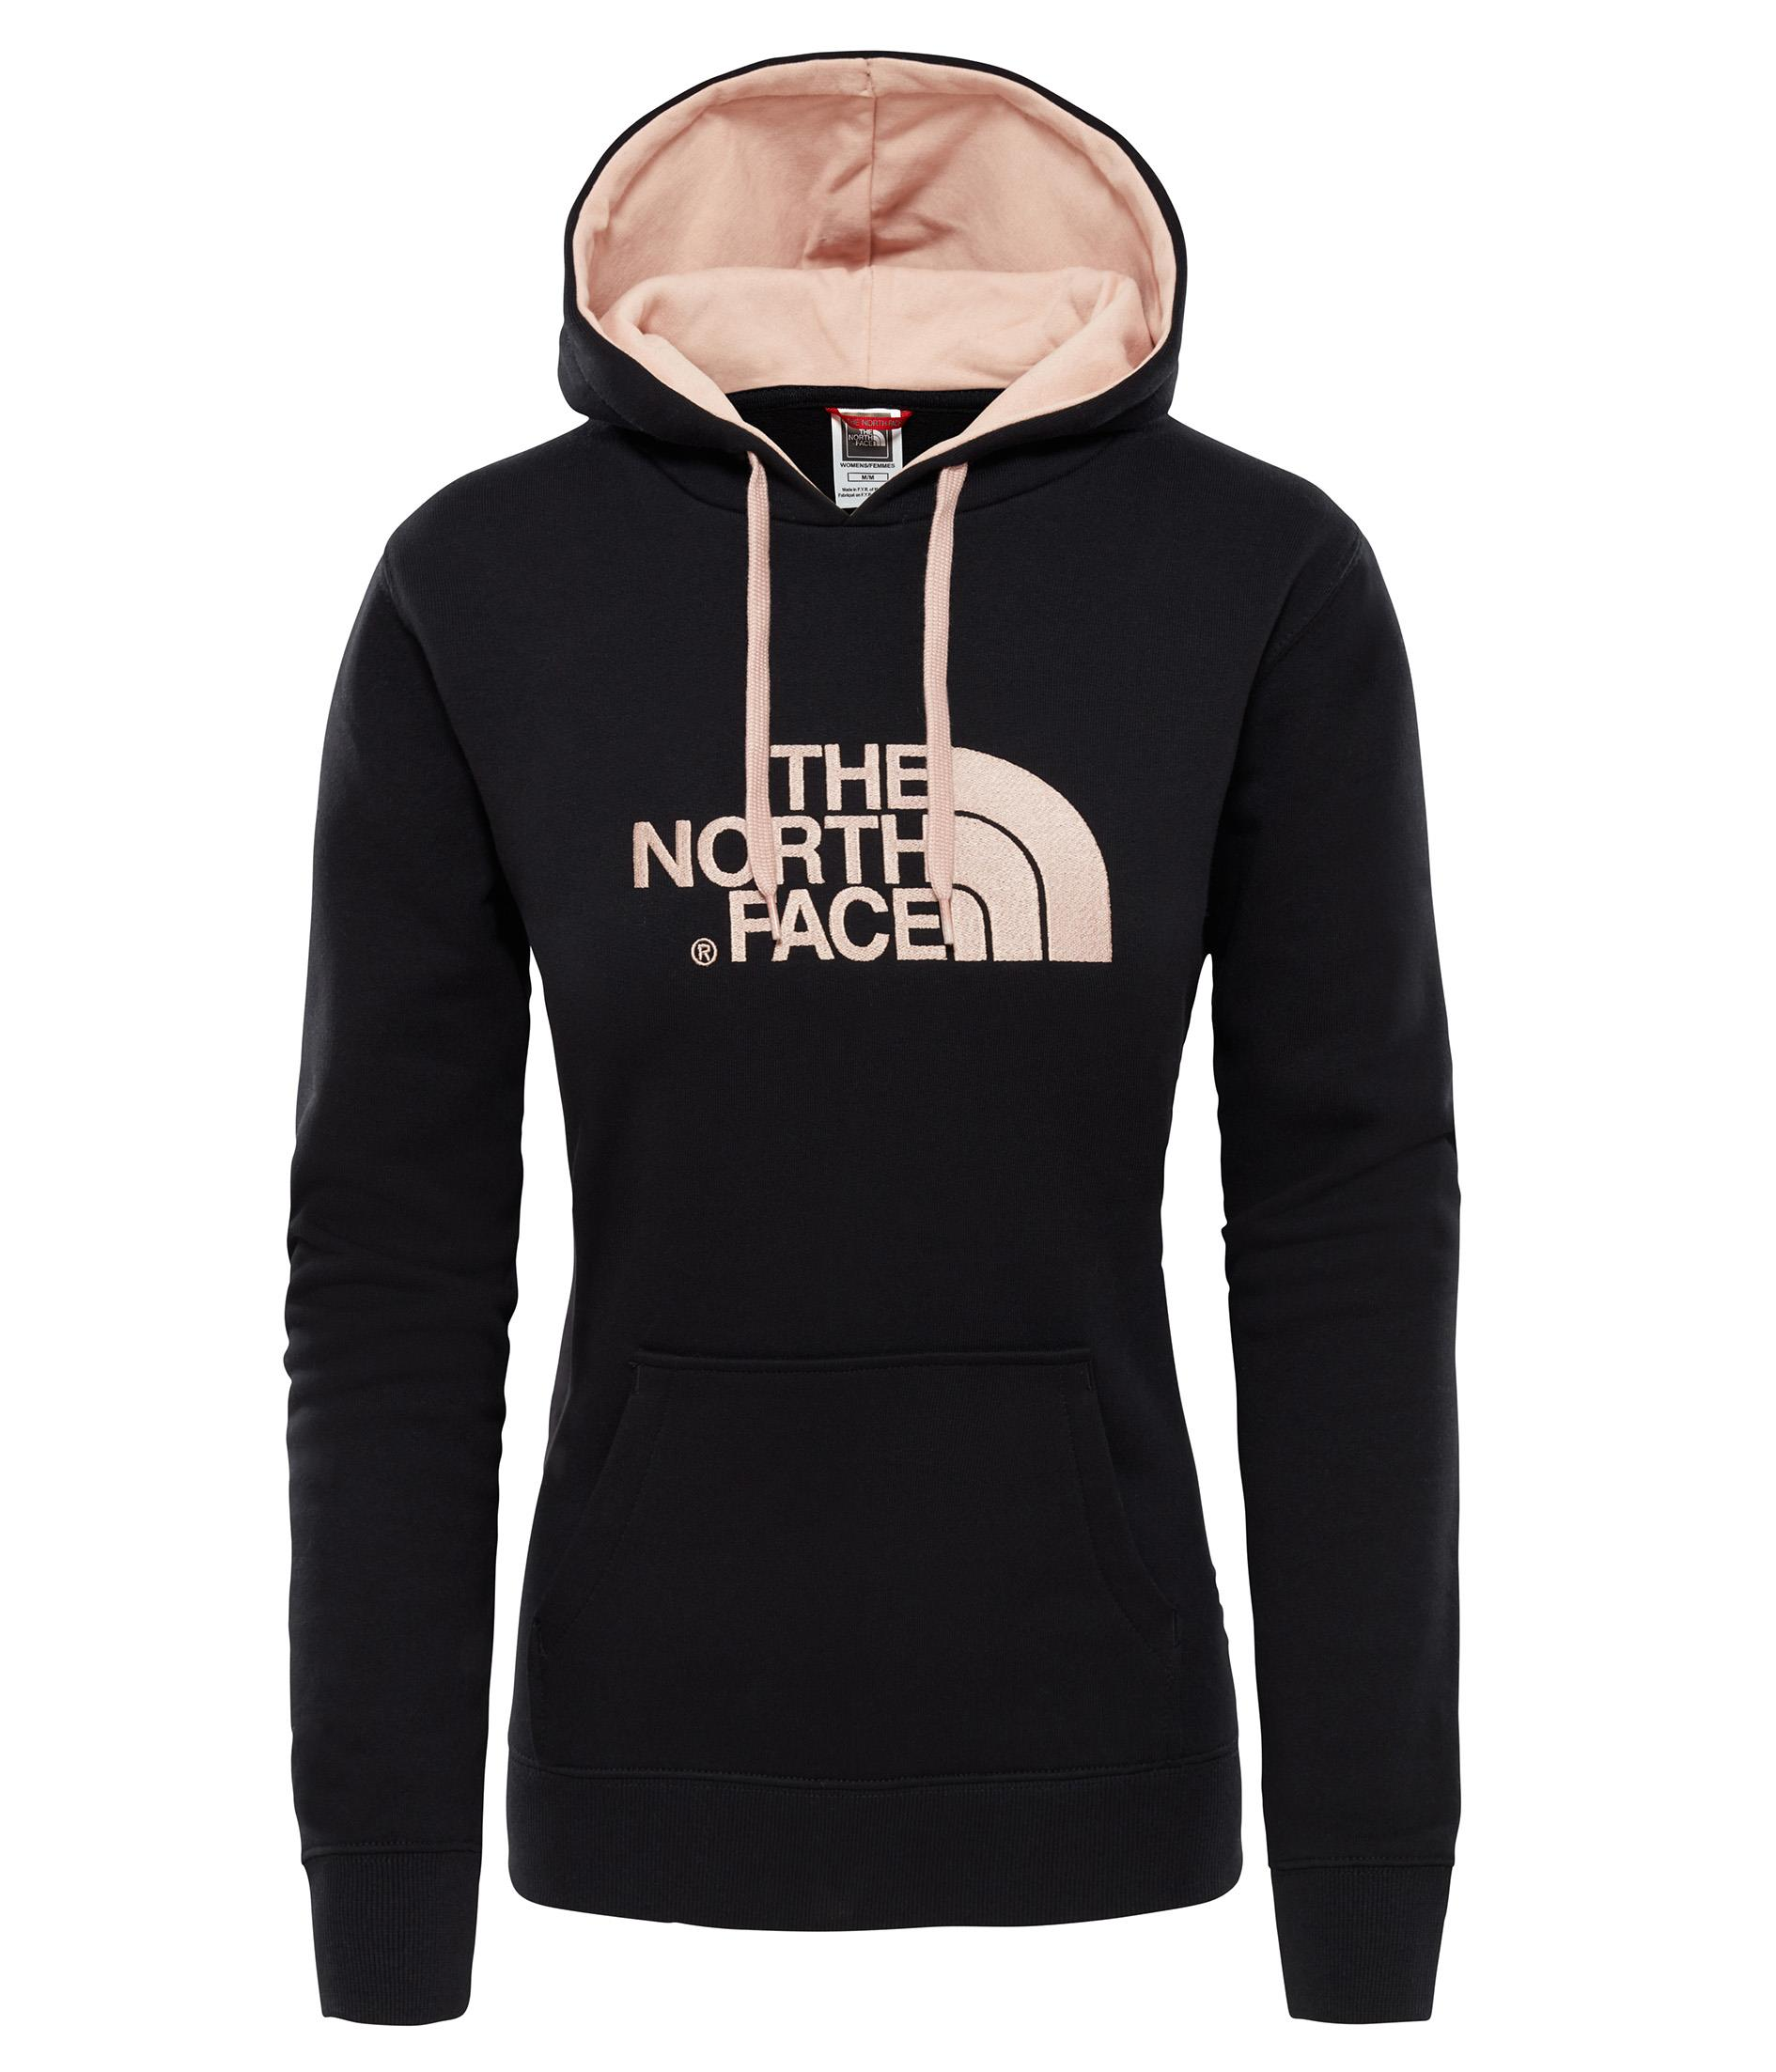 The North Face Kadın DREW PEAK HOODIE Sweatshirt T0A8MU6ZB